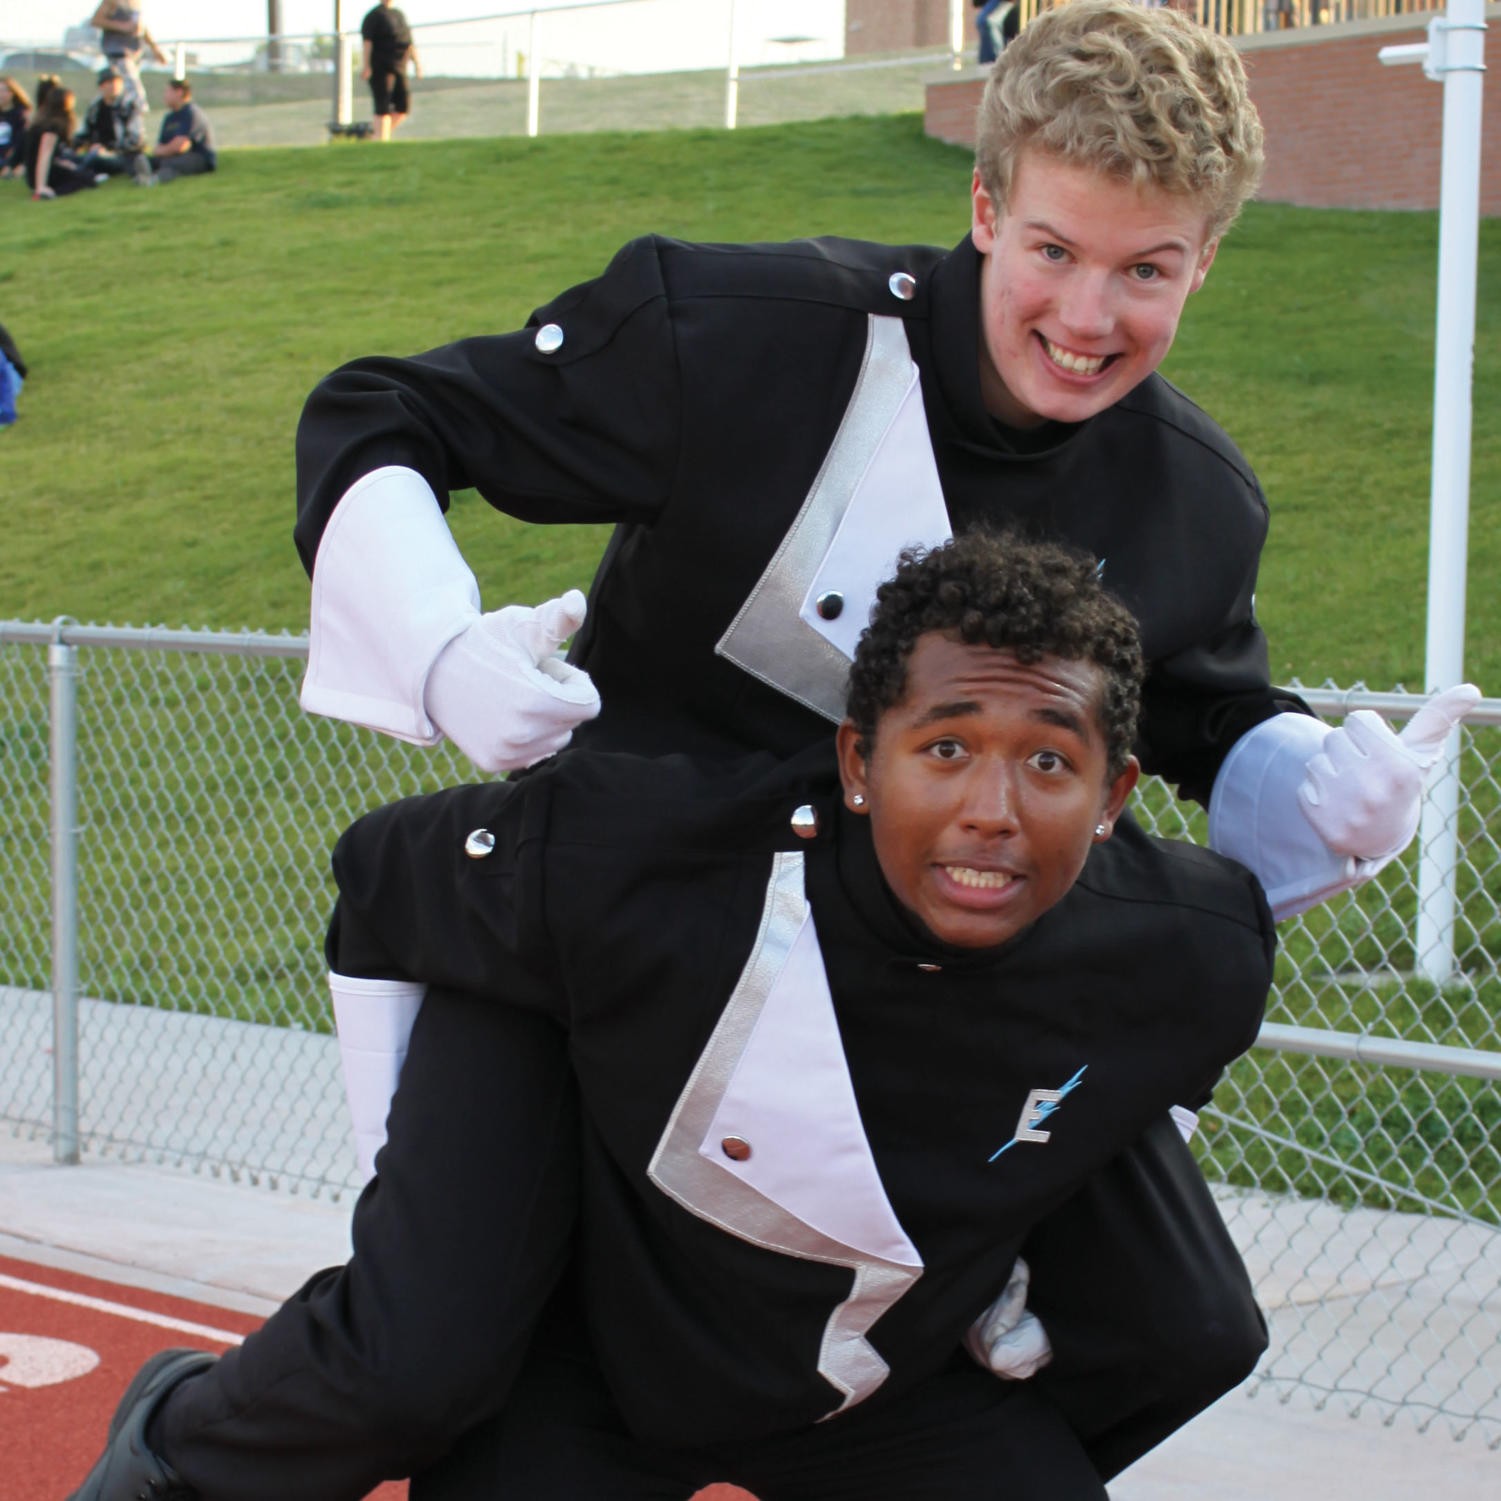 Drum majors Darien Suter (bottom) and Zamboni (top)